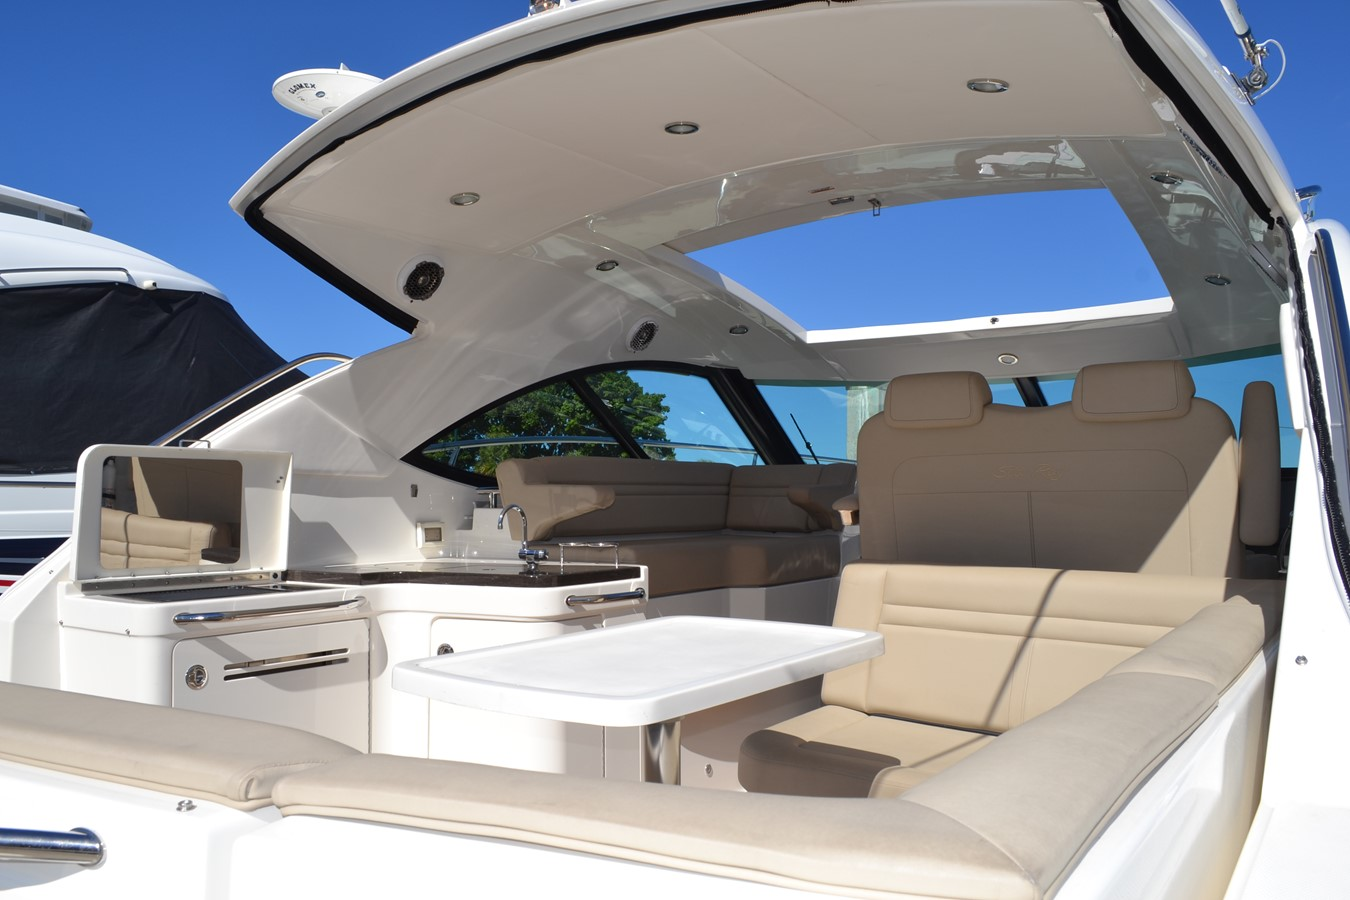 Fully Enclose Hardtop with Sunroof View from Cockpit 2015 SEA RAY 410 Sundancer Motor Yacht 1685731